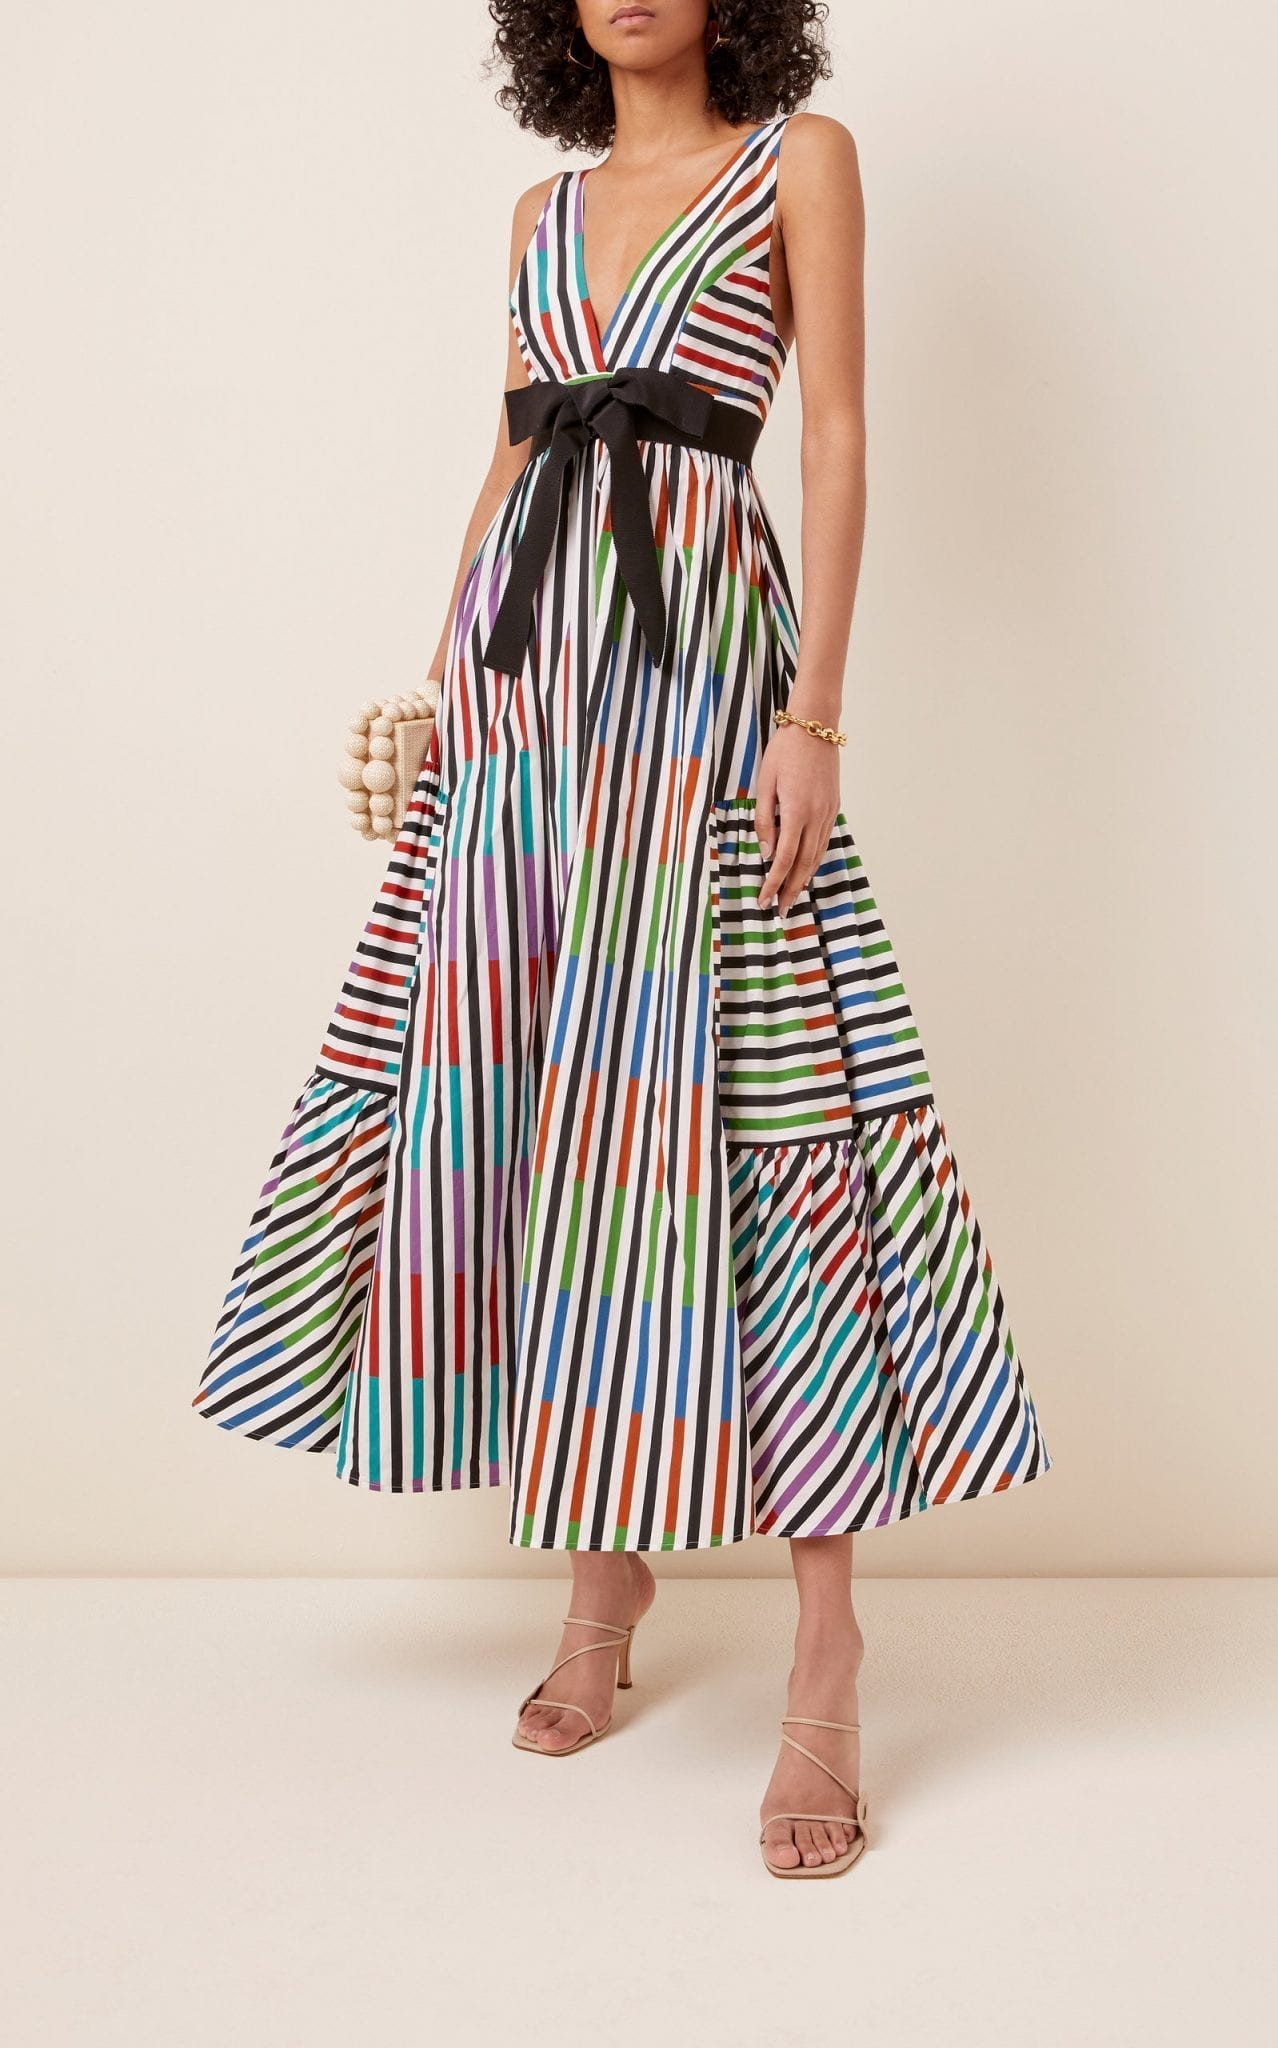 SILVIA TCHERASSI Catalina Del Mar Striped Cotton Maxi Dress